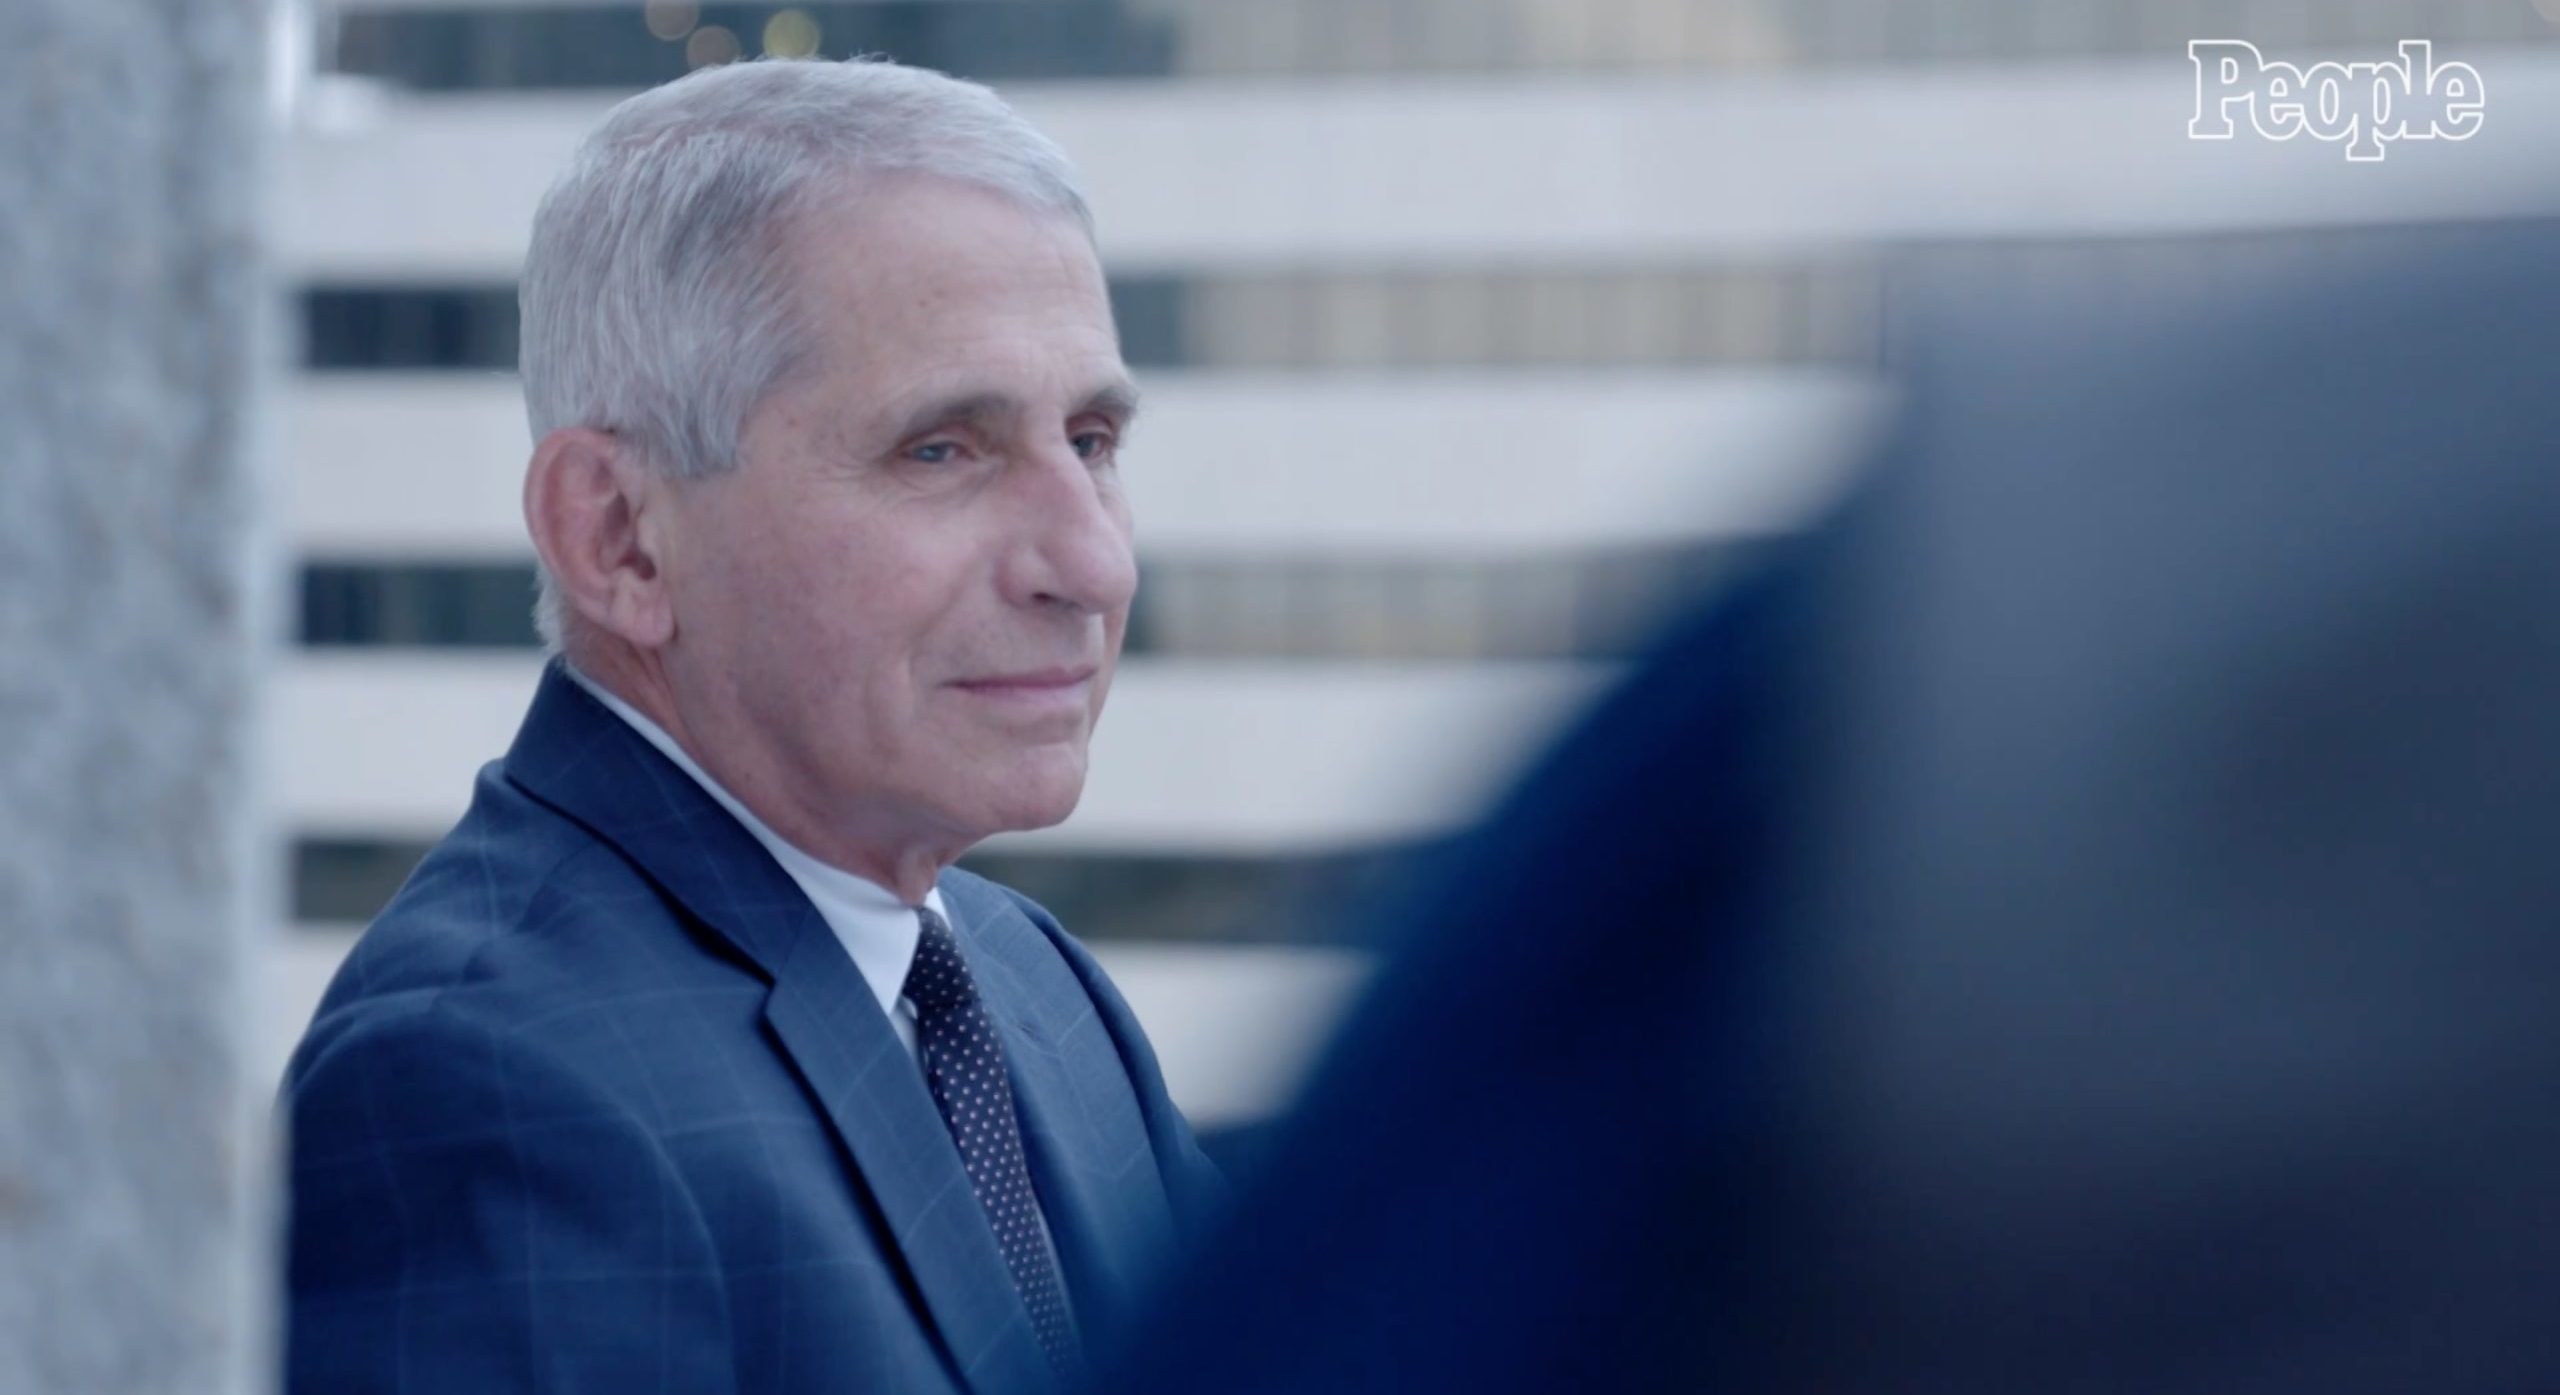 """Dr. Anthony Fauci poses for a photo with People magazine after being selected as one of the magazine's """"2020 People of the Year."""" (People magazine/Video screenshot)"""